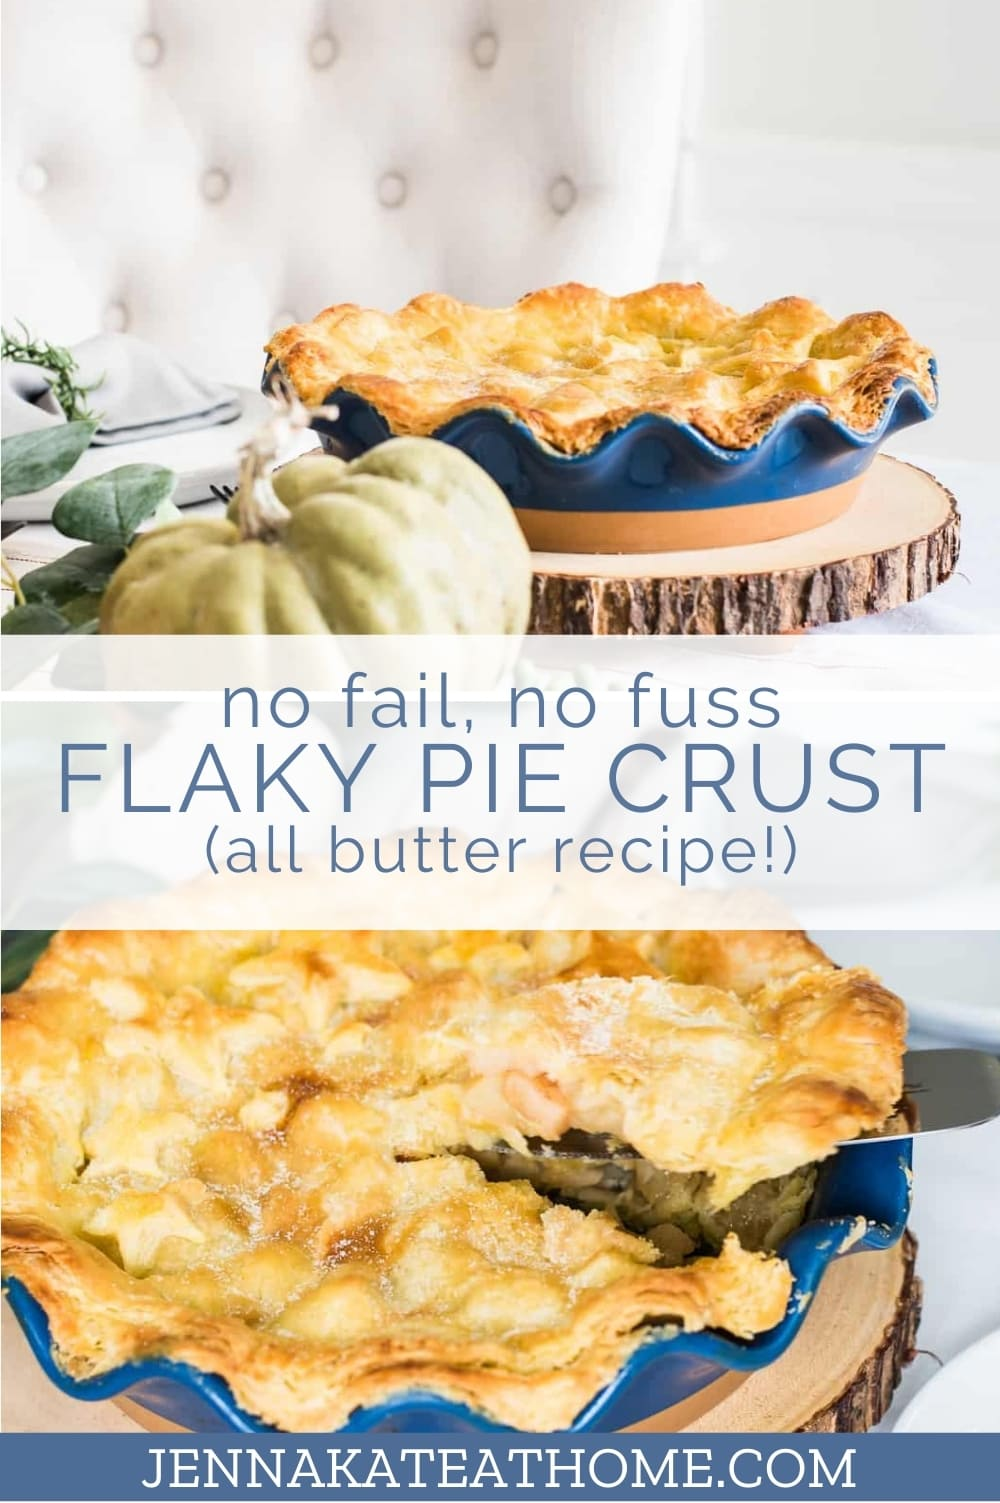 no fuss pie crust recipe